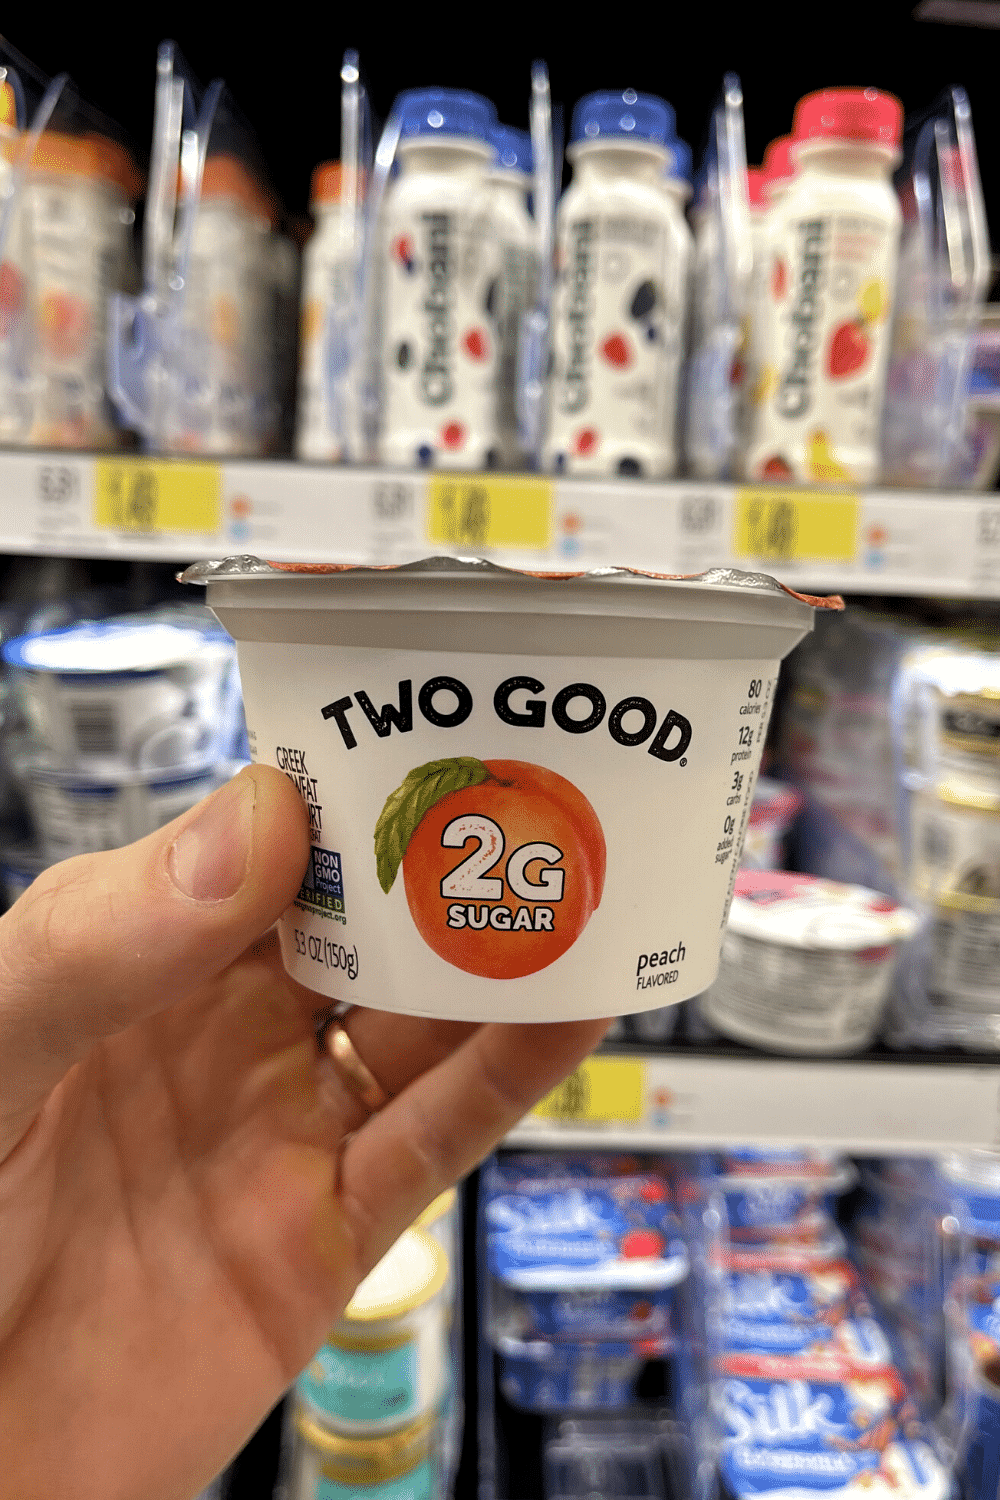 A hand holding a container of low sugar peach yogurt.